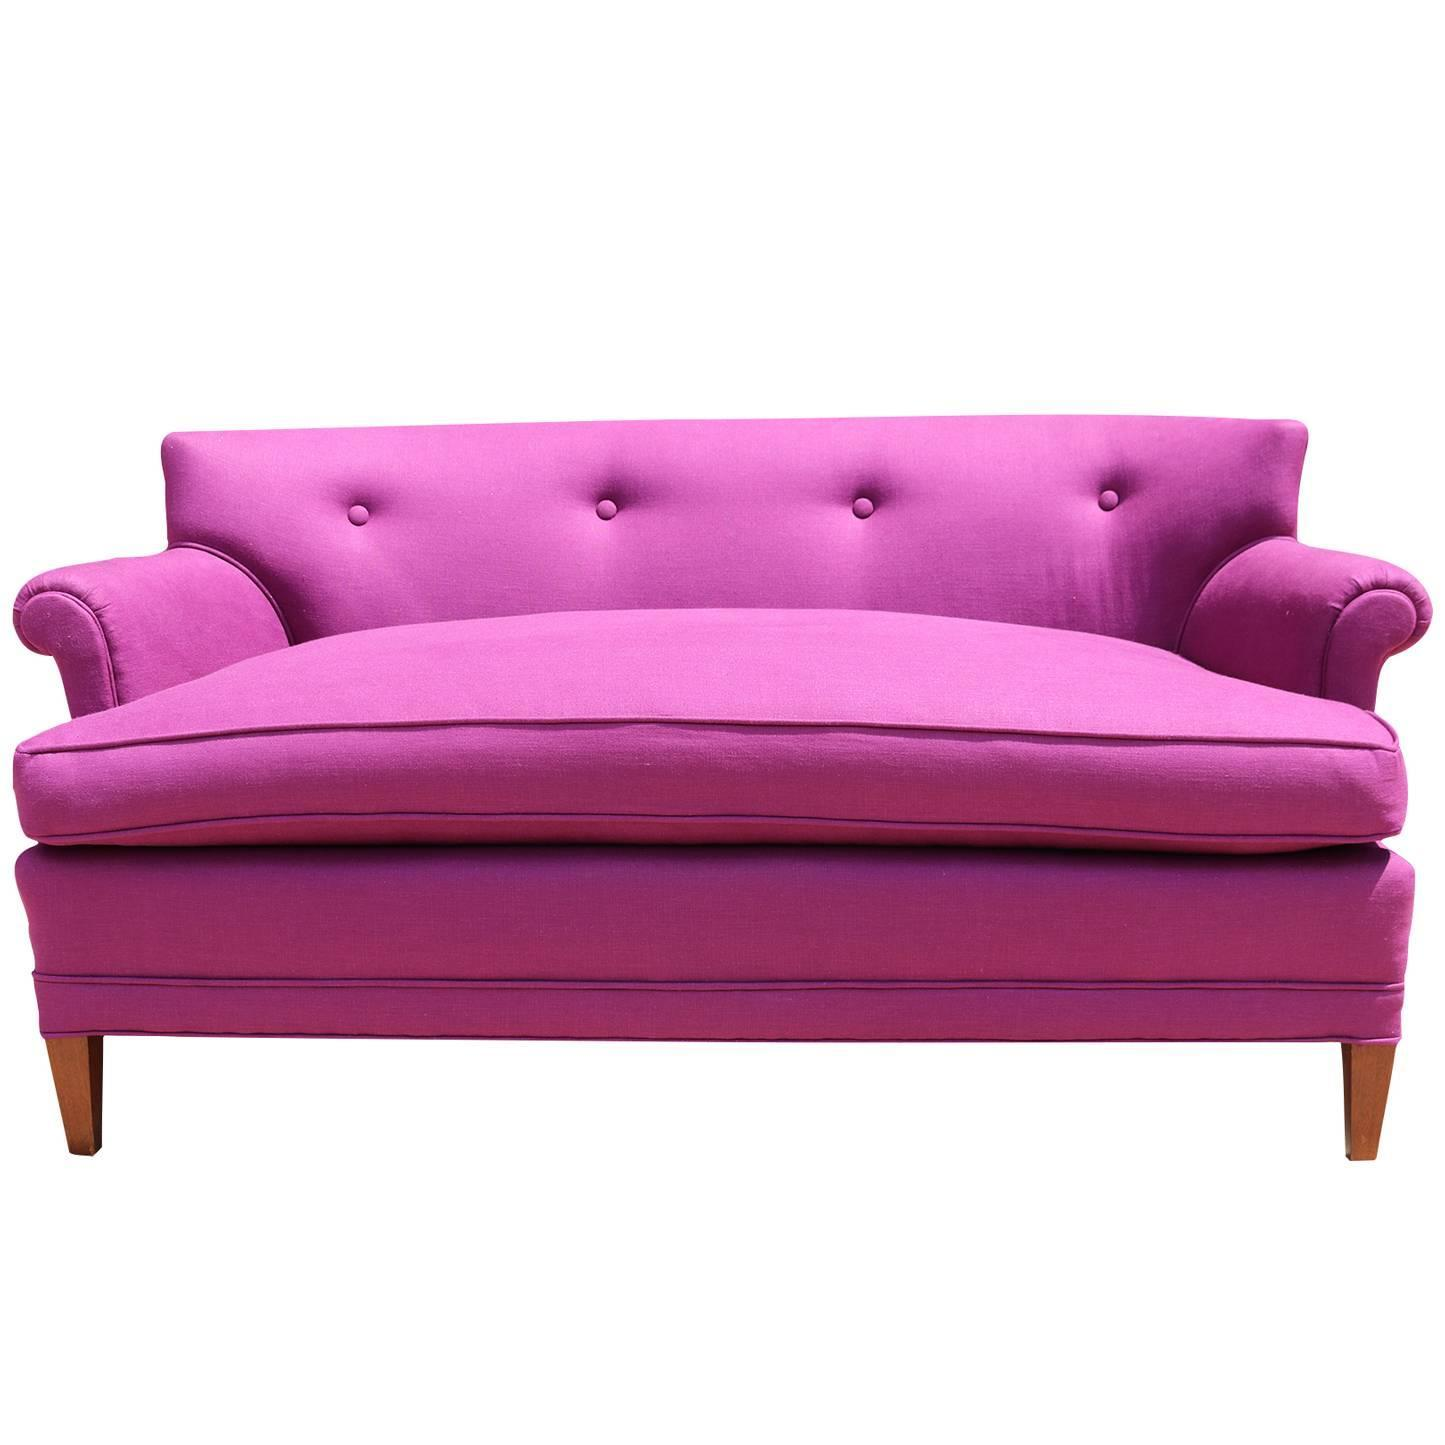 1960s Raspberry Pink Linen Settee Loveseat With Curved Arms At 1stdibs